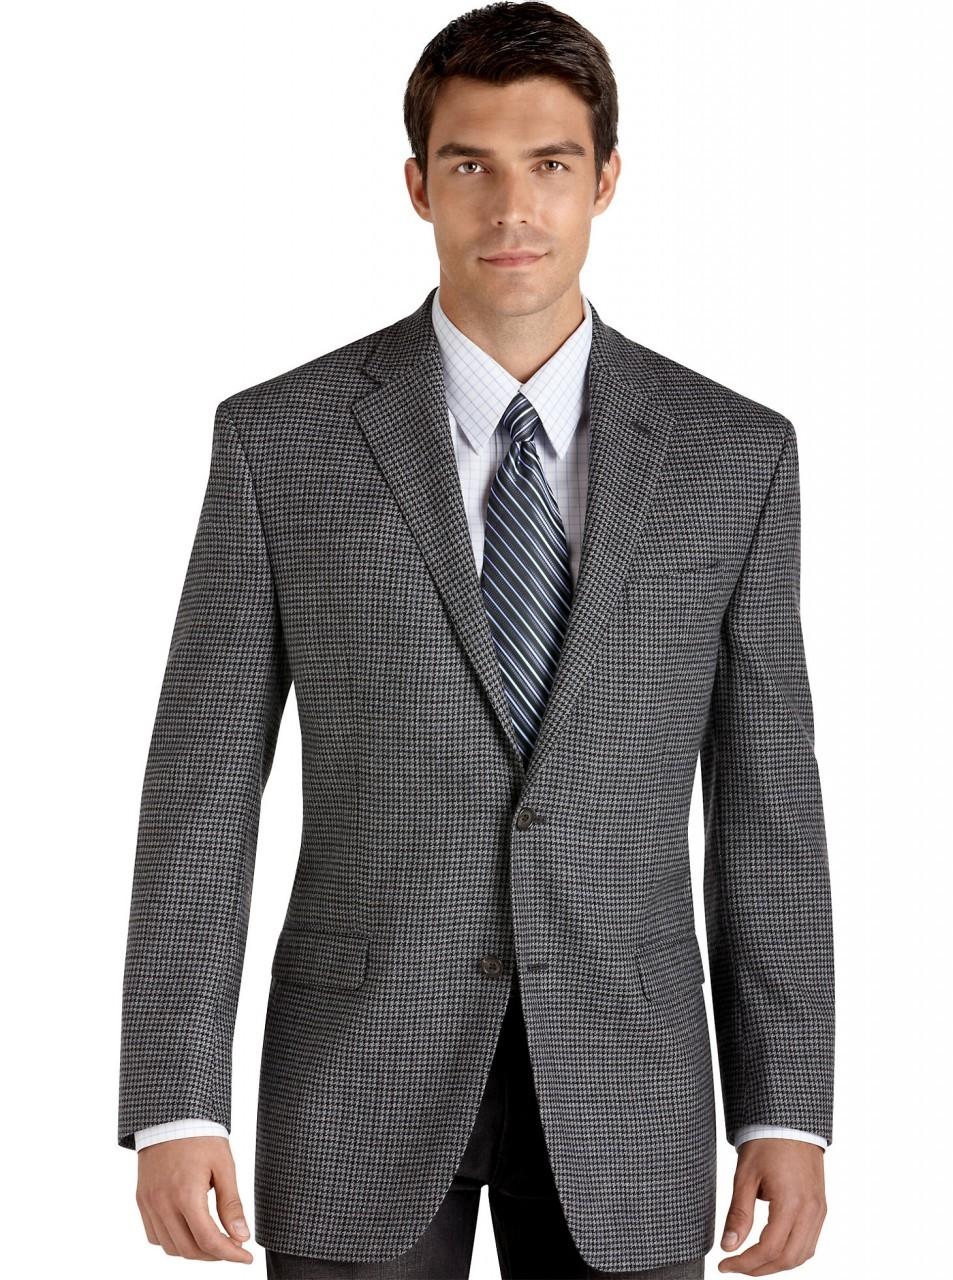 Kmart has the best selection of men's suits and sport coats in stock. Find stylish men's sport coats at affordable prices.